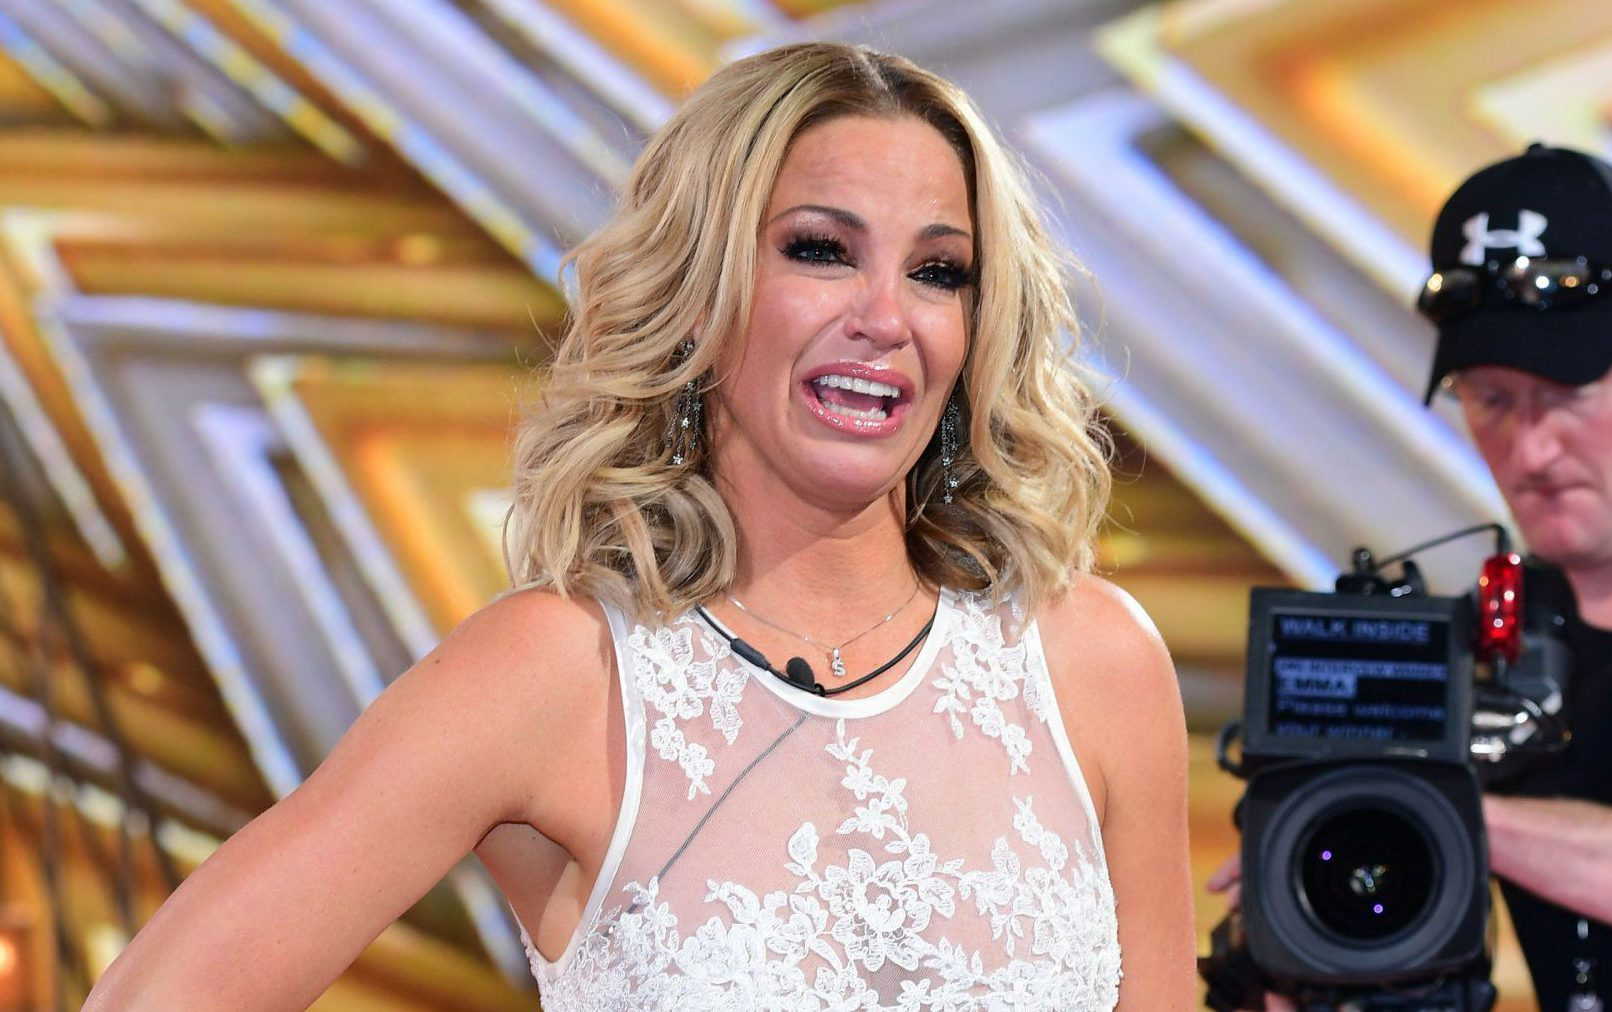 Sarah Harding reacts to winning during the live final of Celebrity Big Brother, at Elstree Studios in Borehamwood, Hertfordshire. PRESS ASSOCIATION Photo. Picture date: Friday August 25, 2017. Photo credit should read: Ian West/PA Wire.